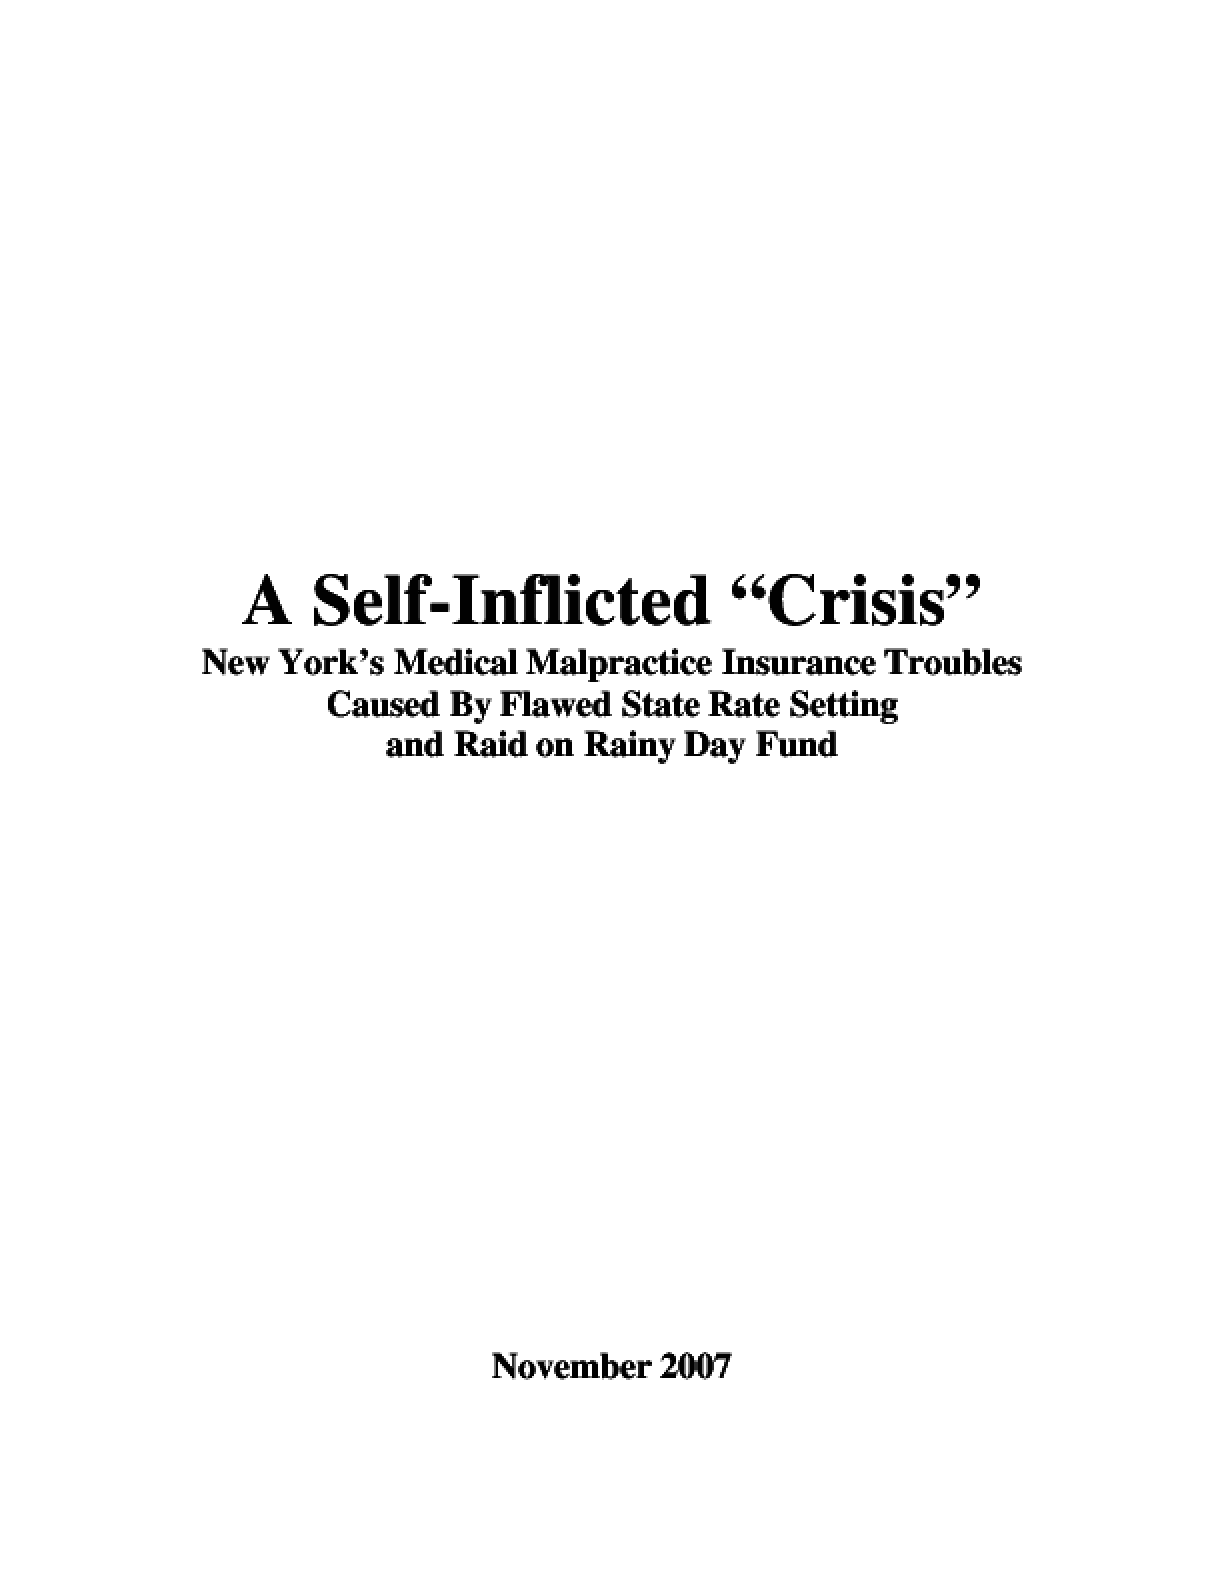 "A Self-Inflicted ""Crisis"": New York's Medical Malpractice Insurance Troubles Caused By Flawed State Rate Setting and Raid on Rainy Day Fund"